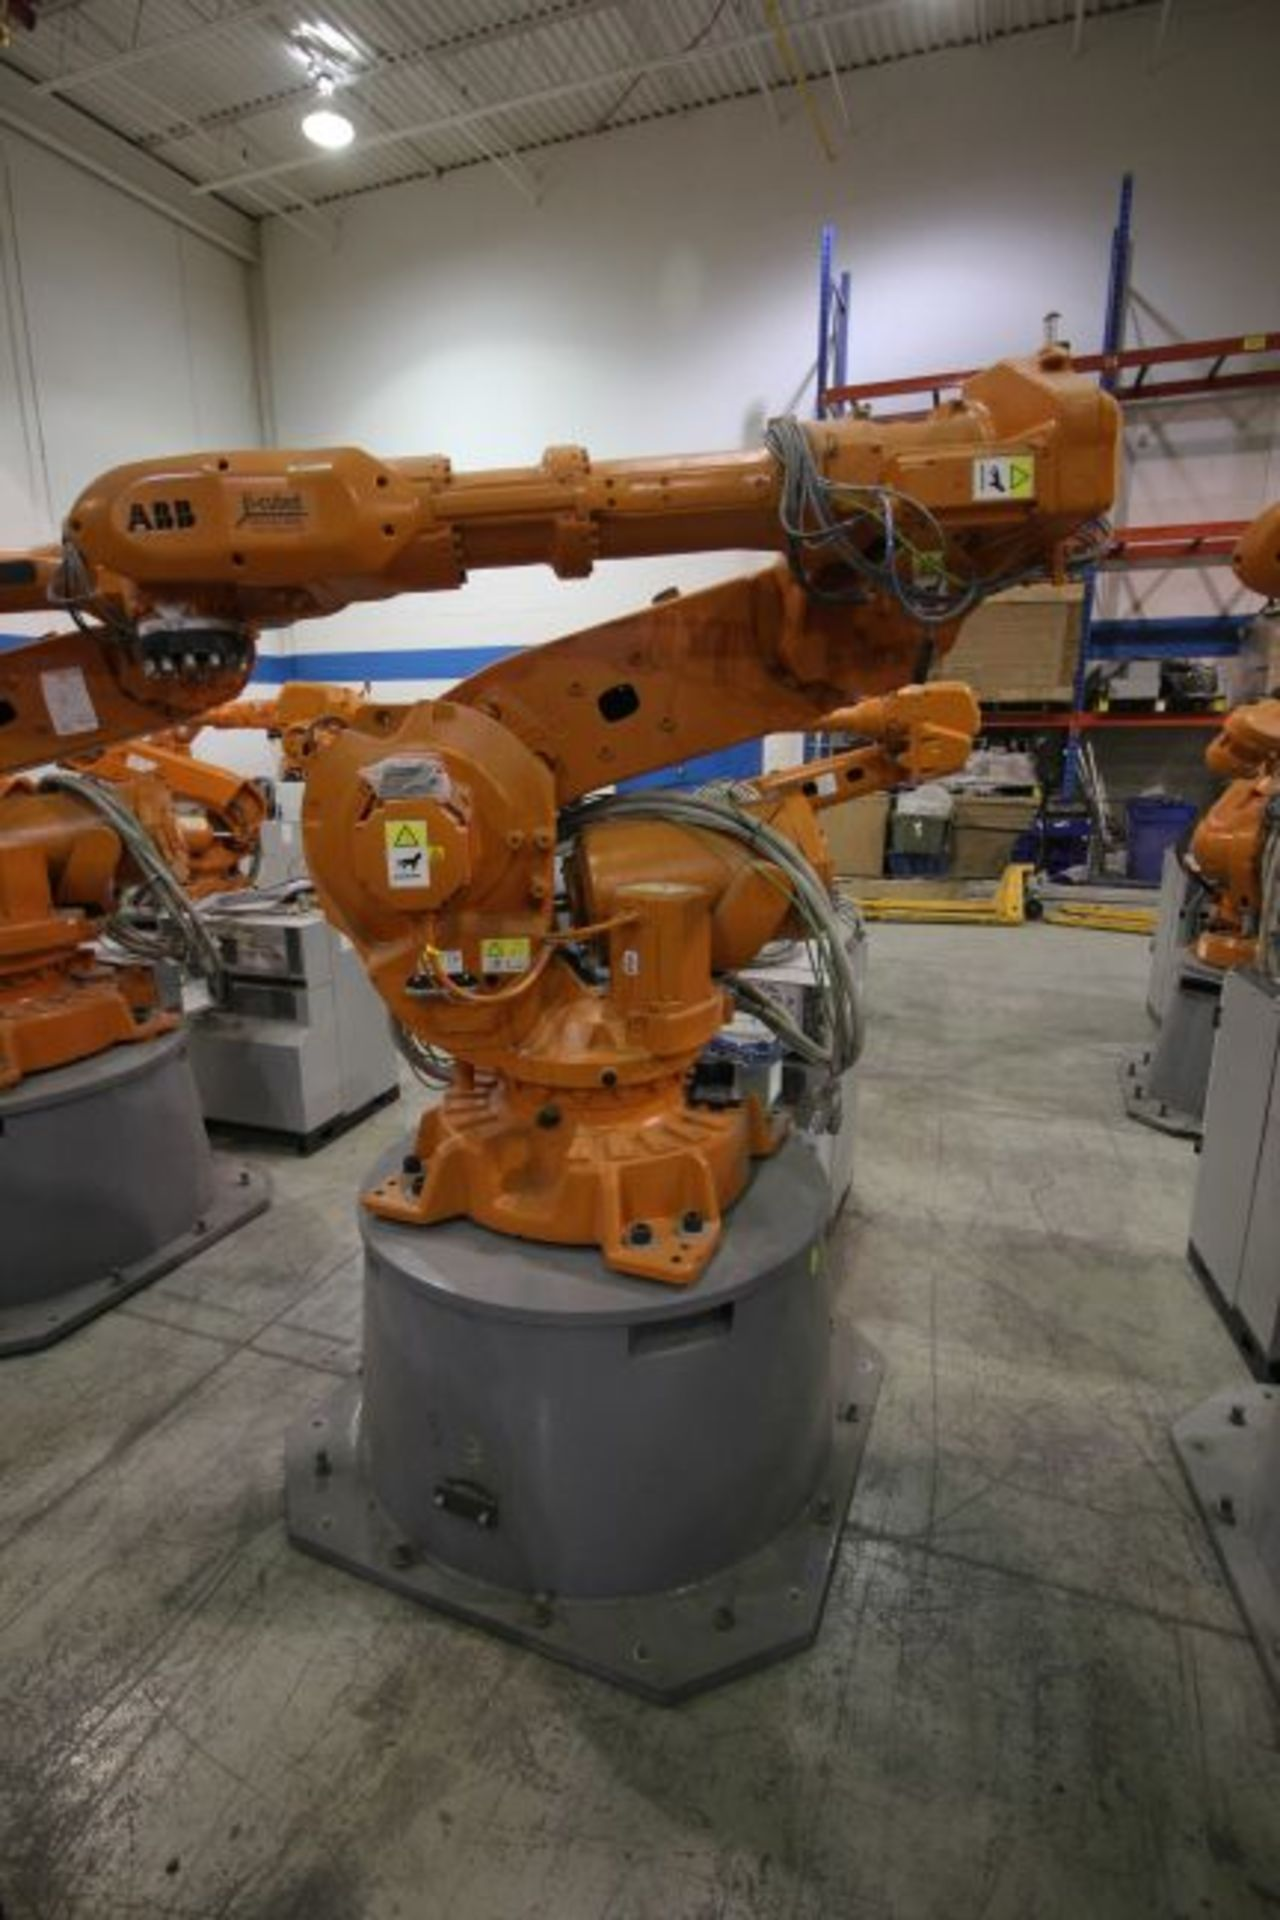 ABB ROBOT IRB 6640 2.8/185 WITH IRC5 CONTROLS, YEAR 2014, SN 503058 TEACH PENDANT & CABLES